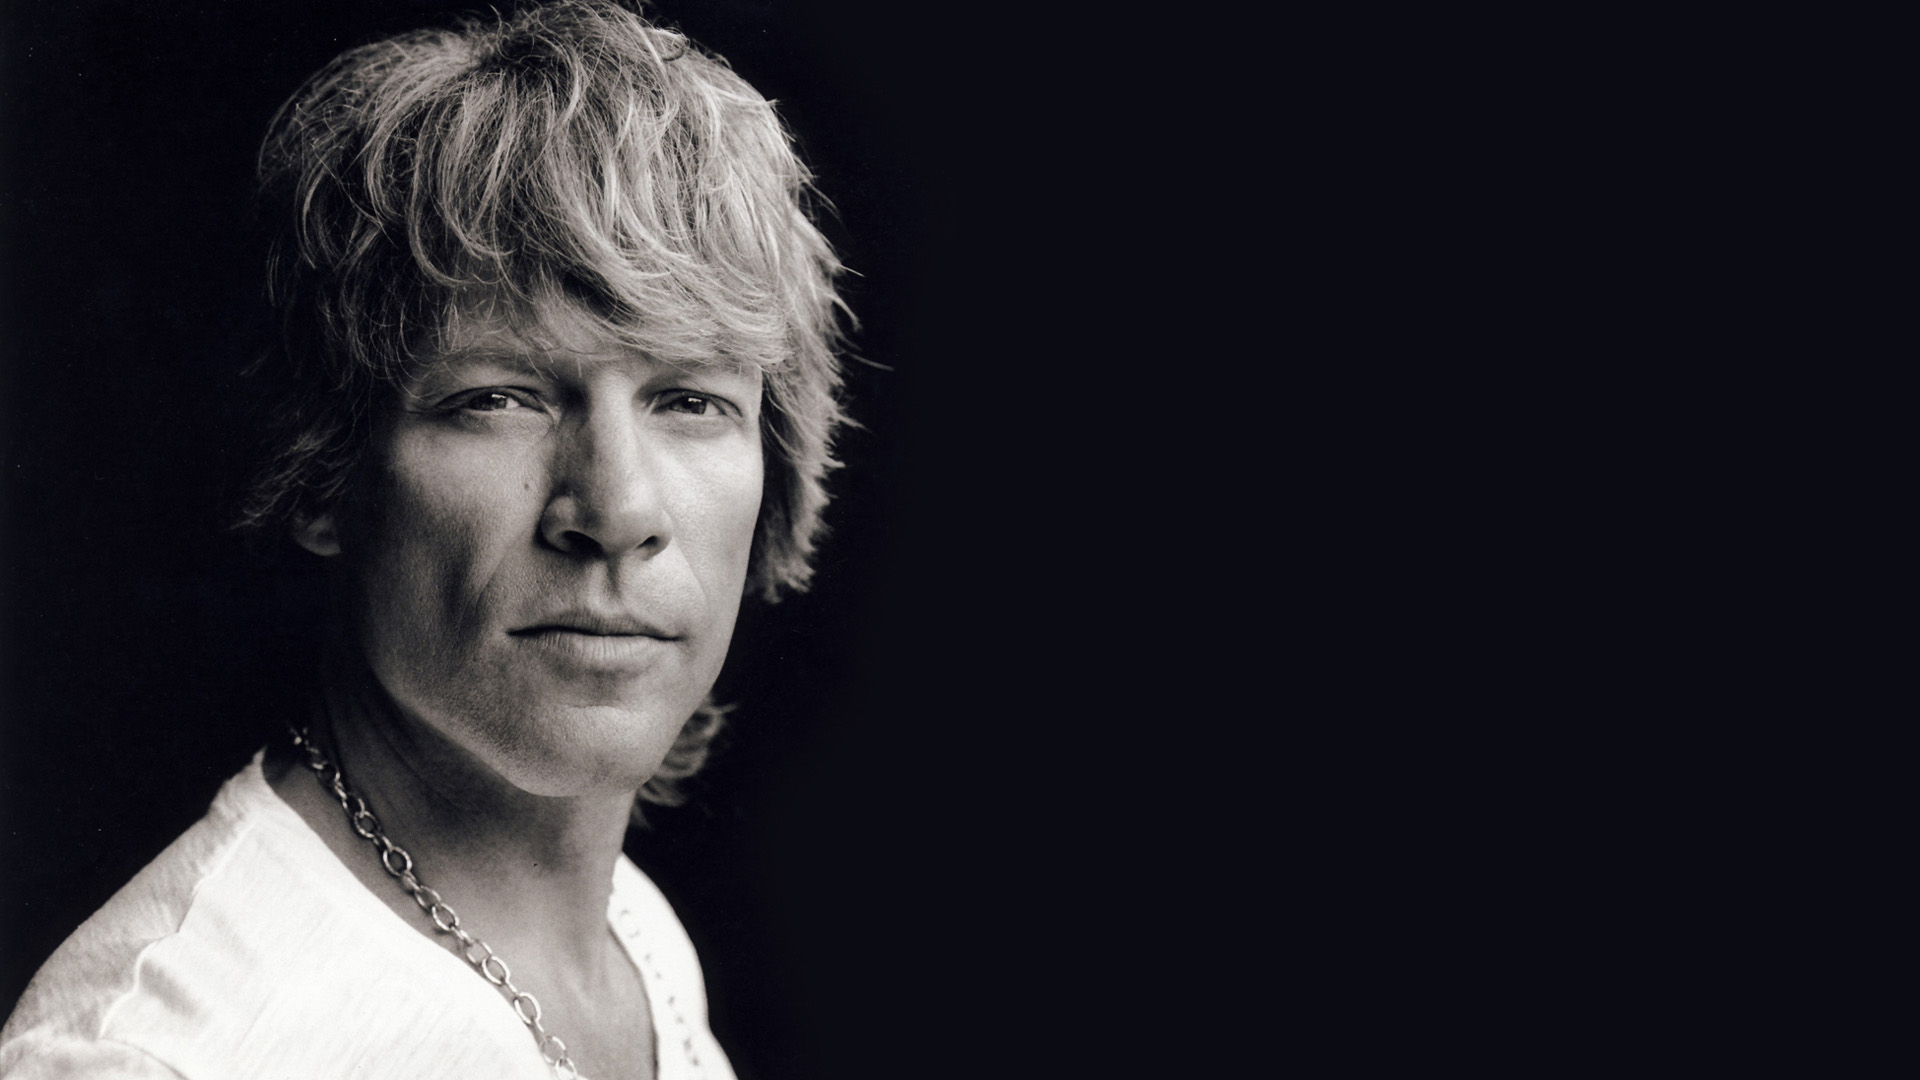 Jon Bon Jovi Wallpapers Jon Bon Jovi Wallpaper Wallpaper High Definition High Quality